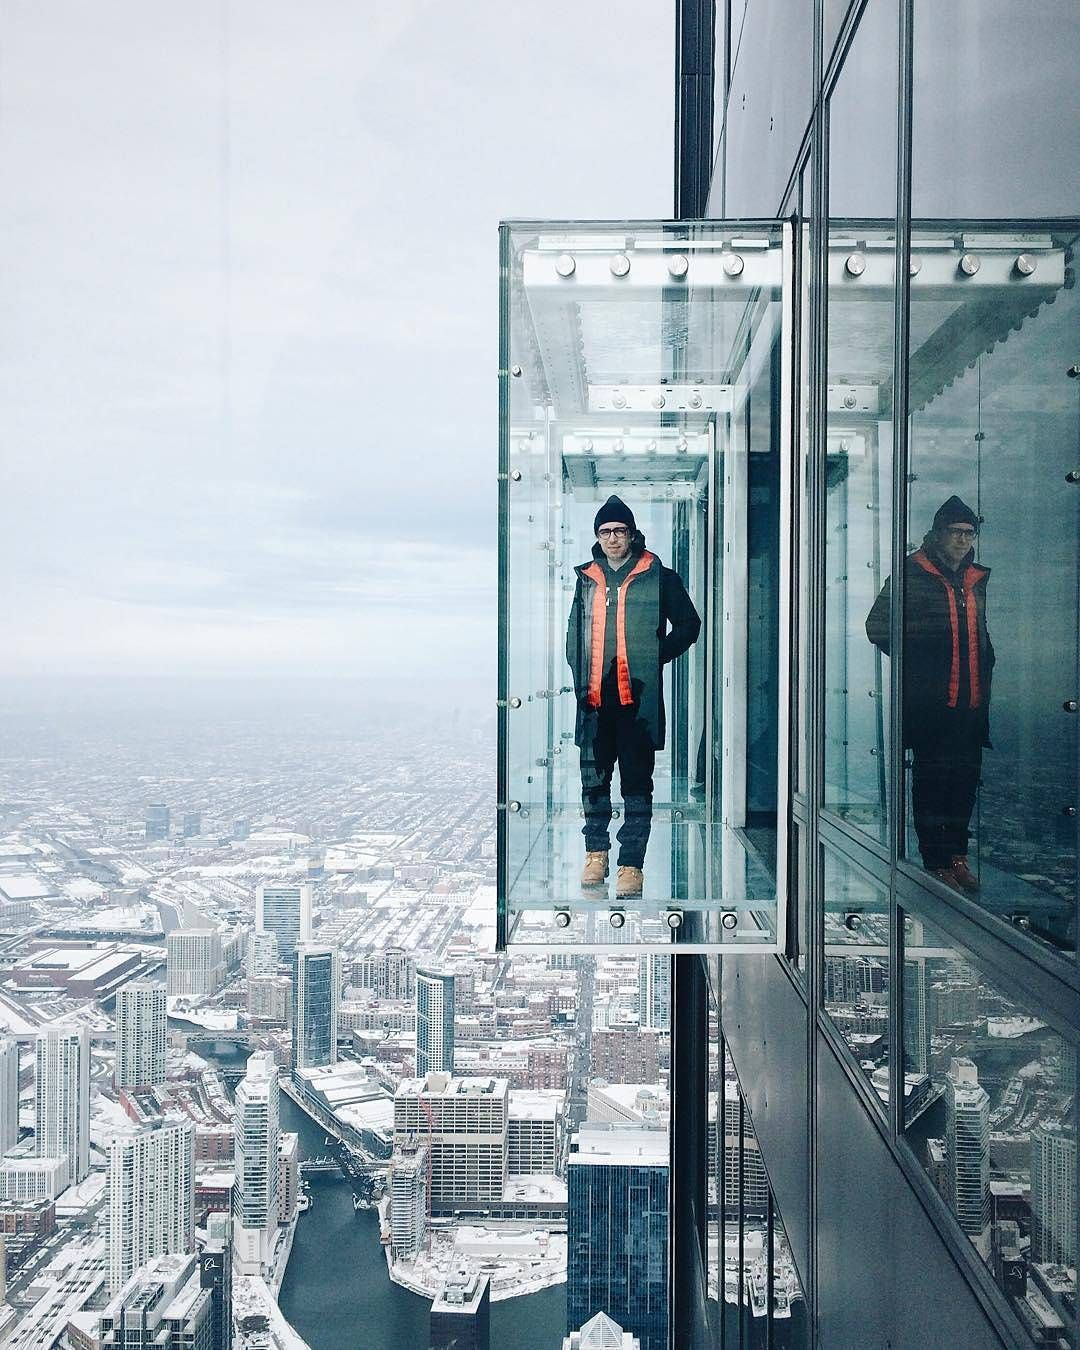 From The 103rd Floor Of The Willis Tower, @petewilliams